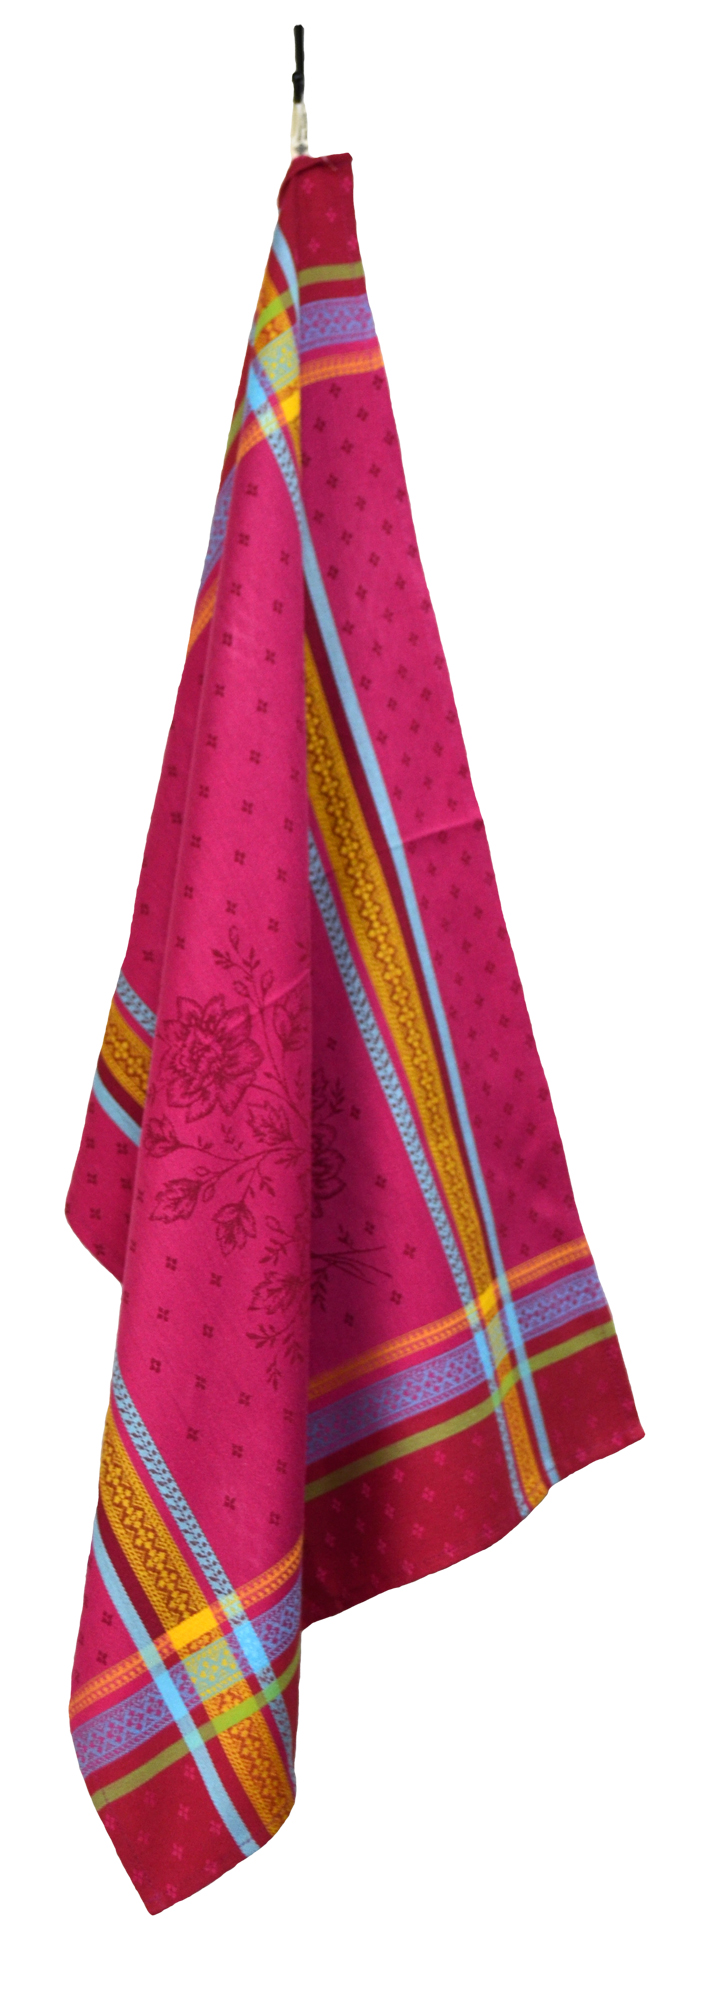 """Floral French Jacquard Tea Towel - Collection """"Massilia"""" Fuchsia, Size: 21 x 29 inches, Price CAN$19.95"""